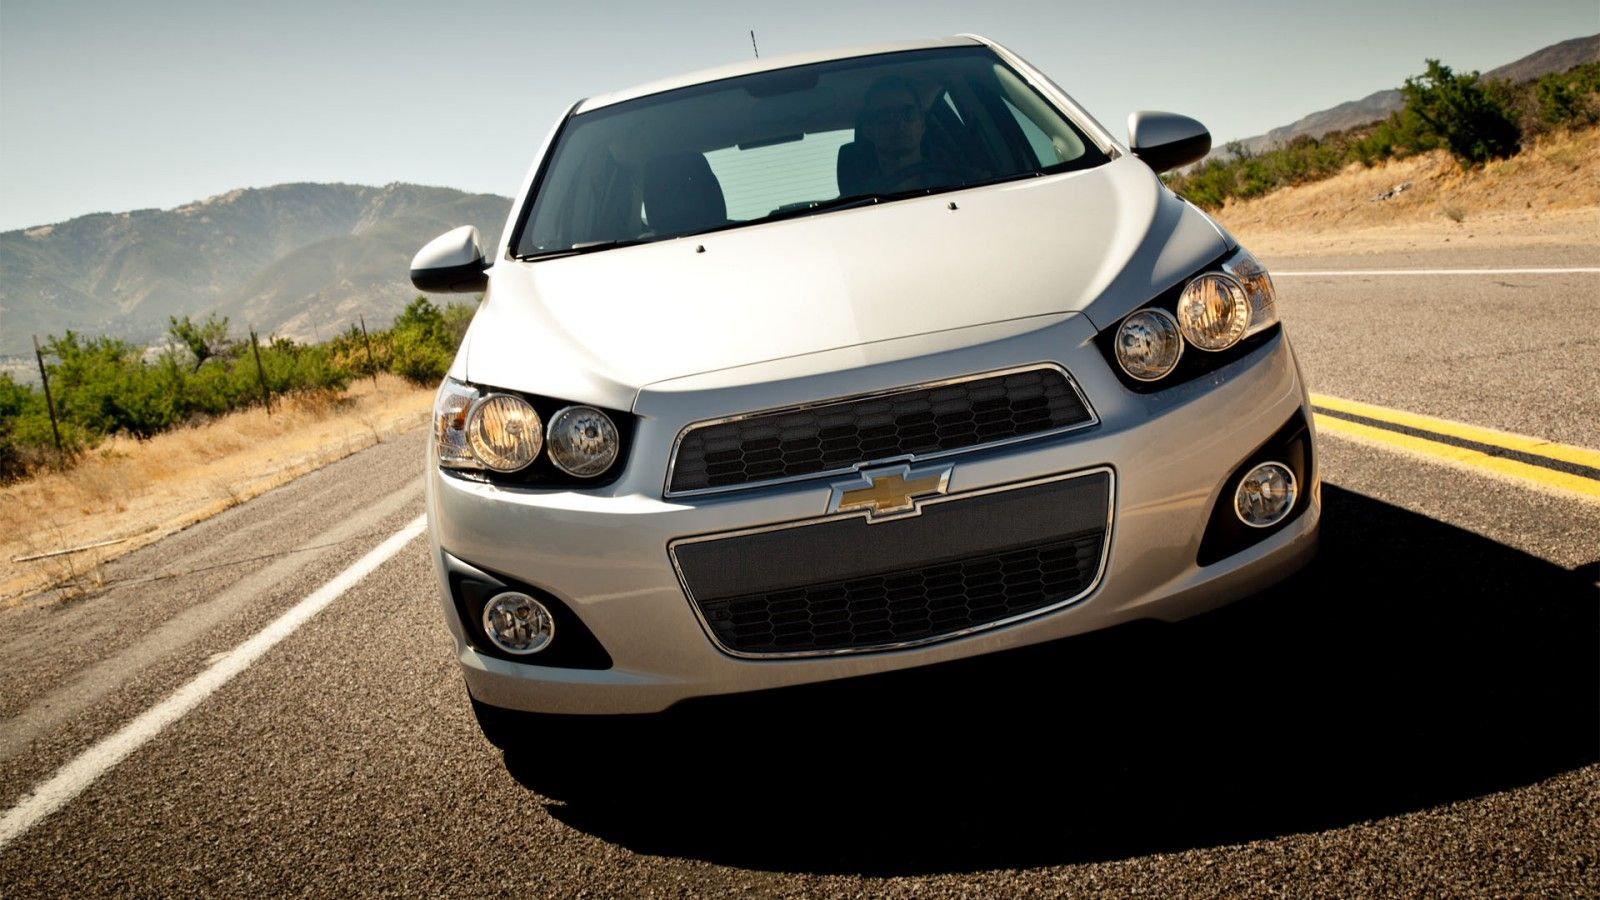 2012 Chevy Sonic Front End Chevy Sonic Chevy Chevrolet Sonic